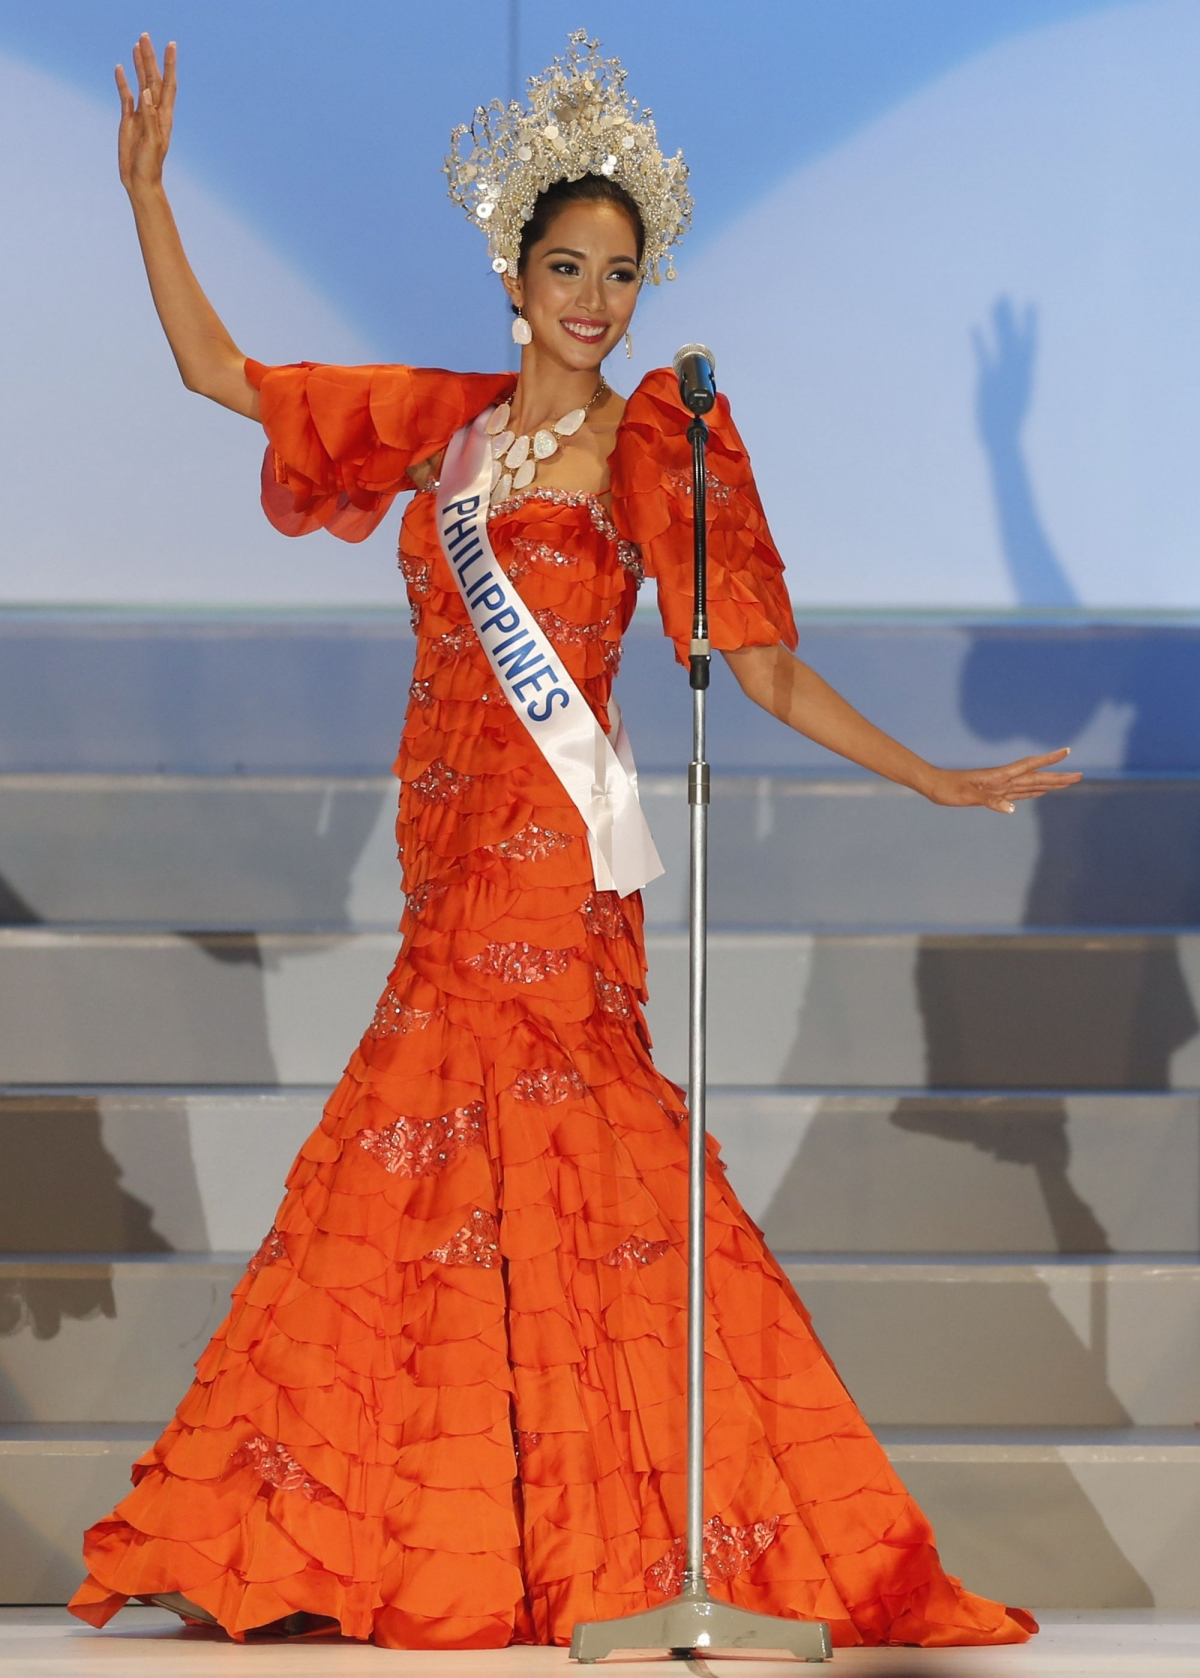 Miss International 2013 Bea Rose Santiago of the Philippines walks on stage during the national costume segment of the 53rd Miss International Beauty Pageant in Tokyo December 17, 2013.